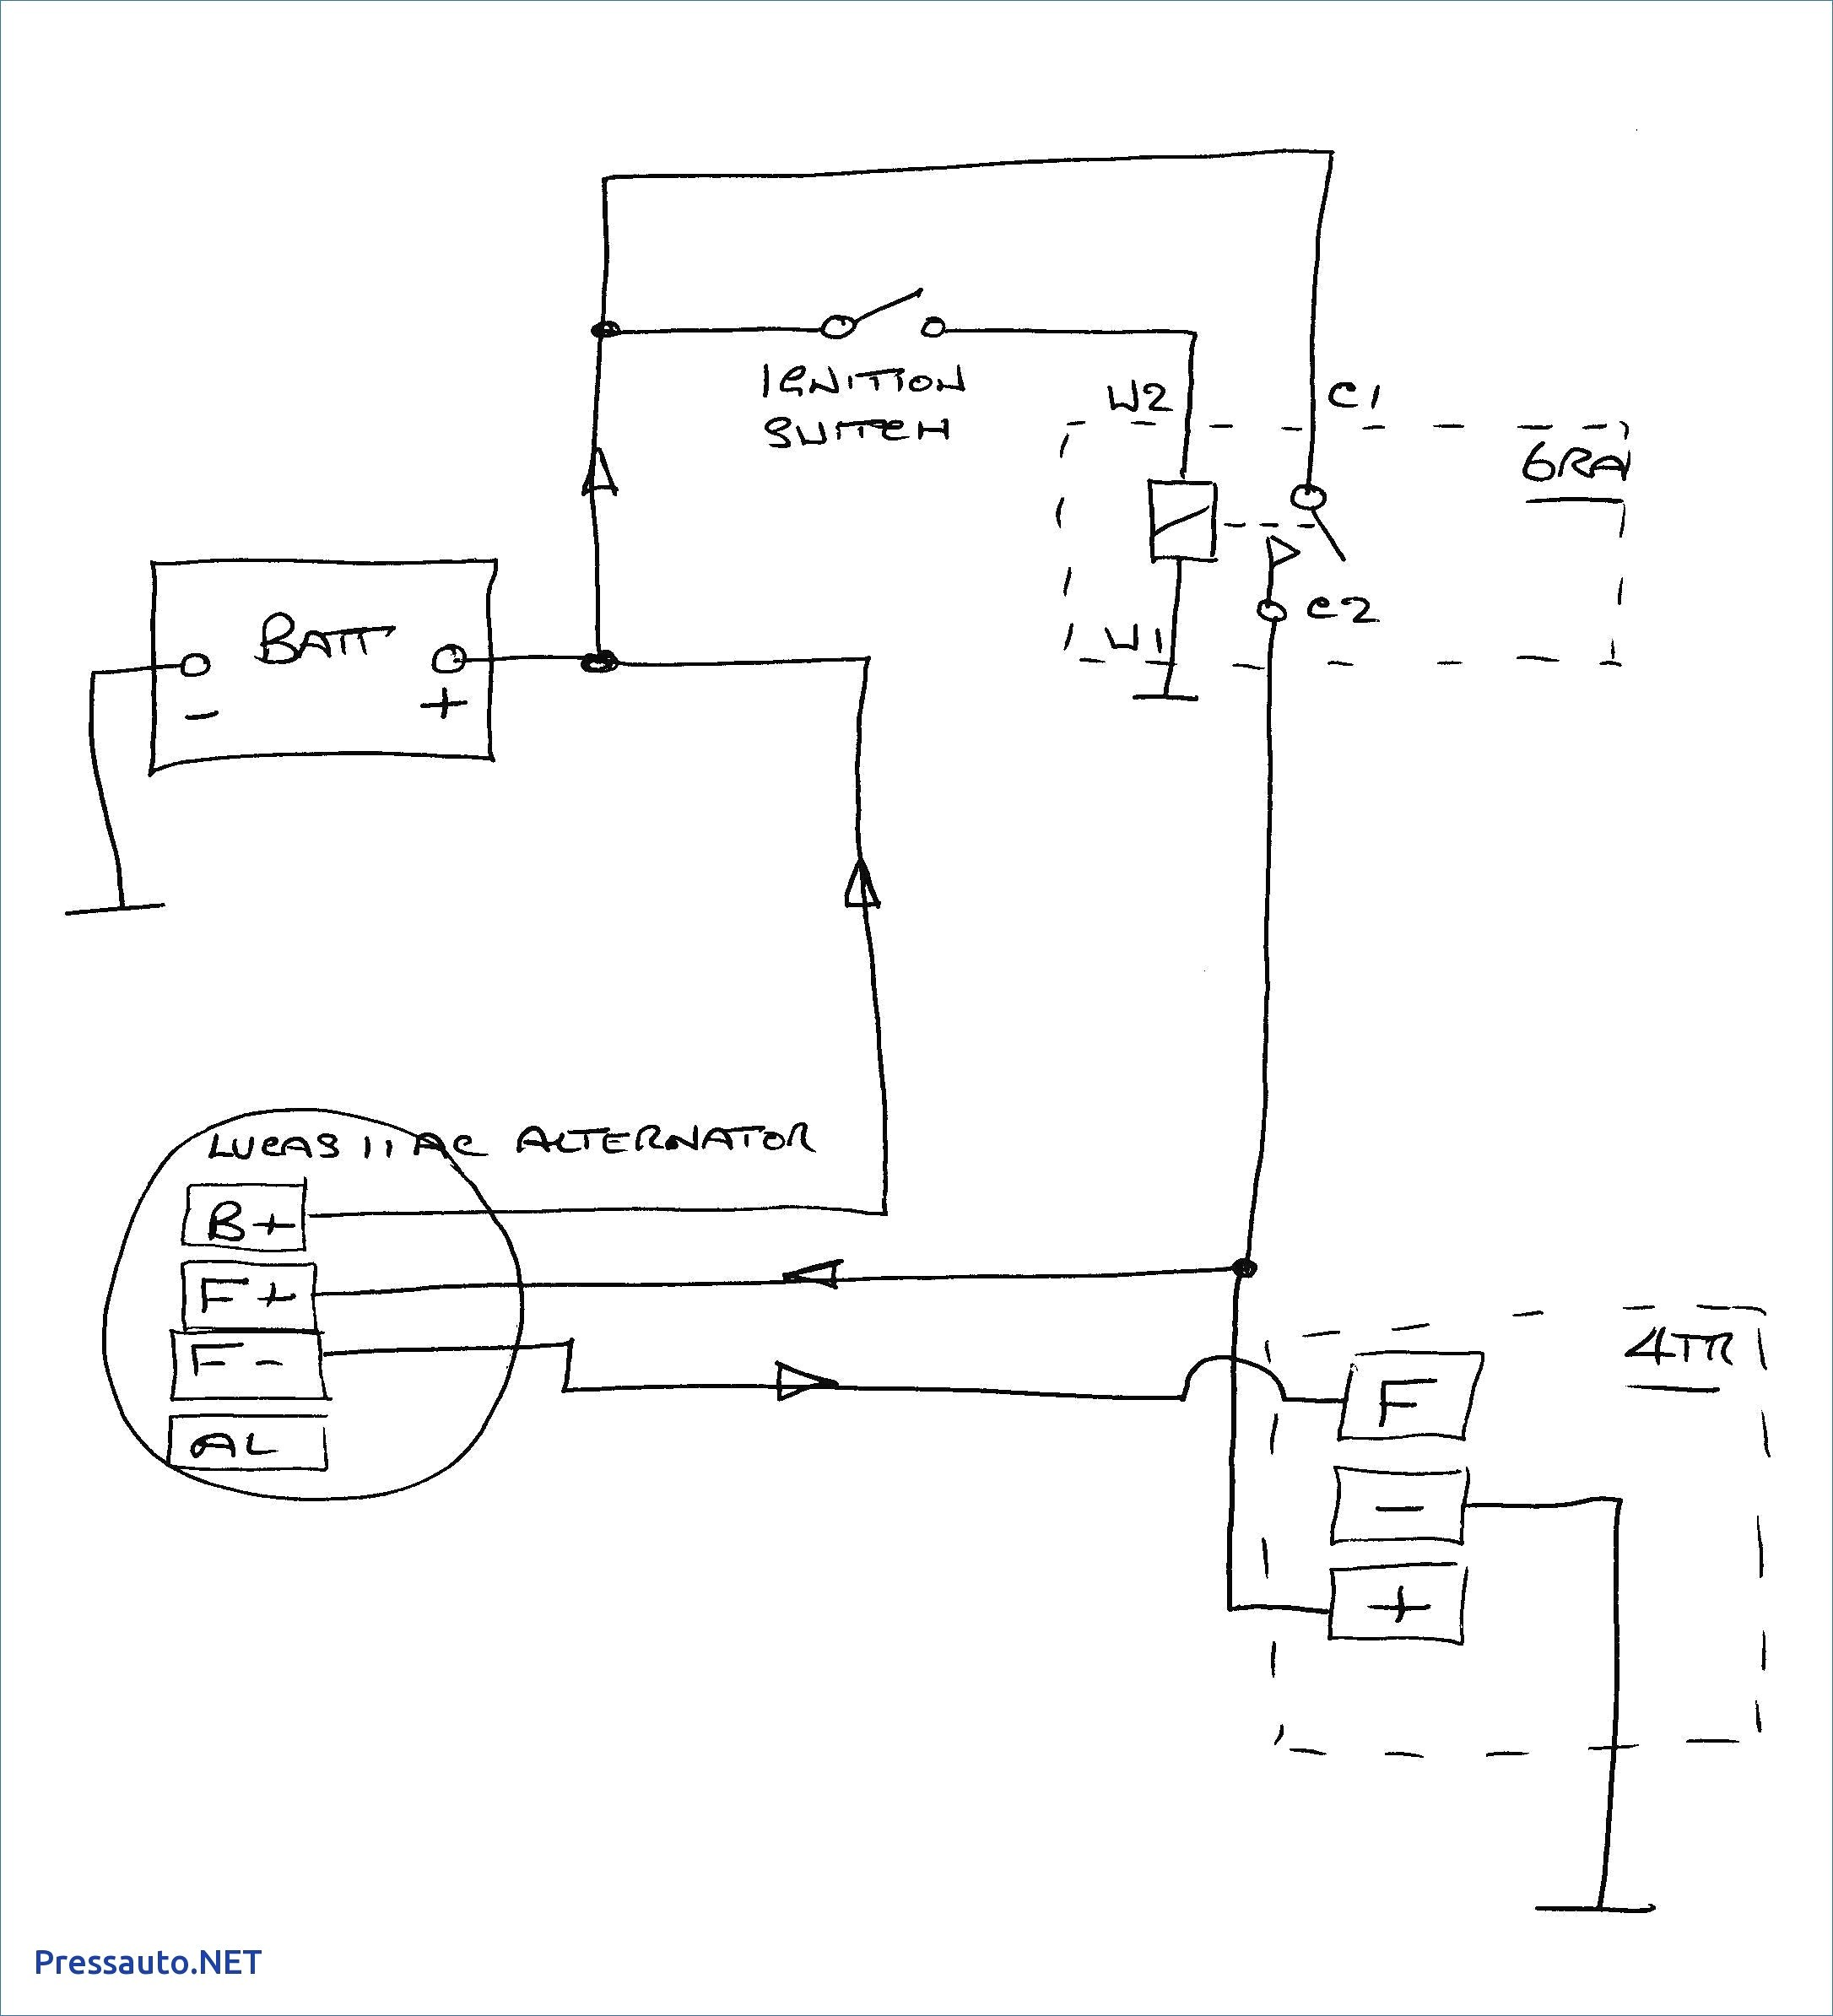 Delco Alternator Wiring Diagram E Wireor Conversion Diagram to Lovely Delco Wiring ford Remy Gm 1 Of Delco Alternator Wiring Diagram